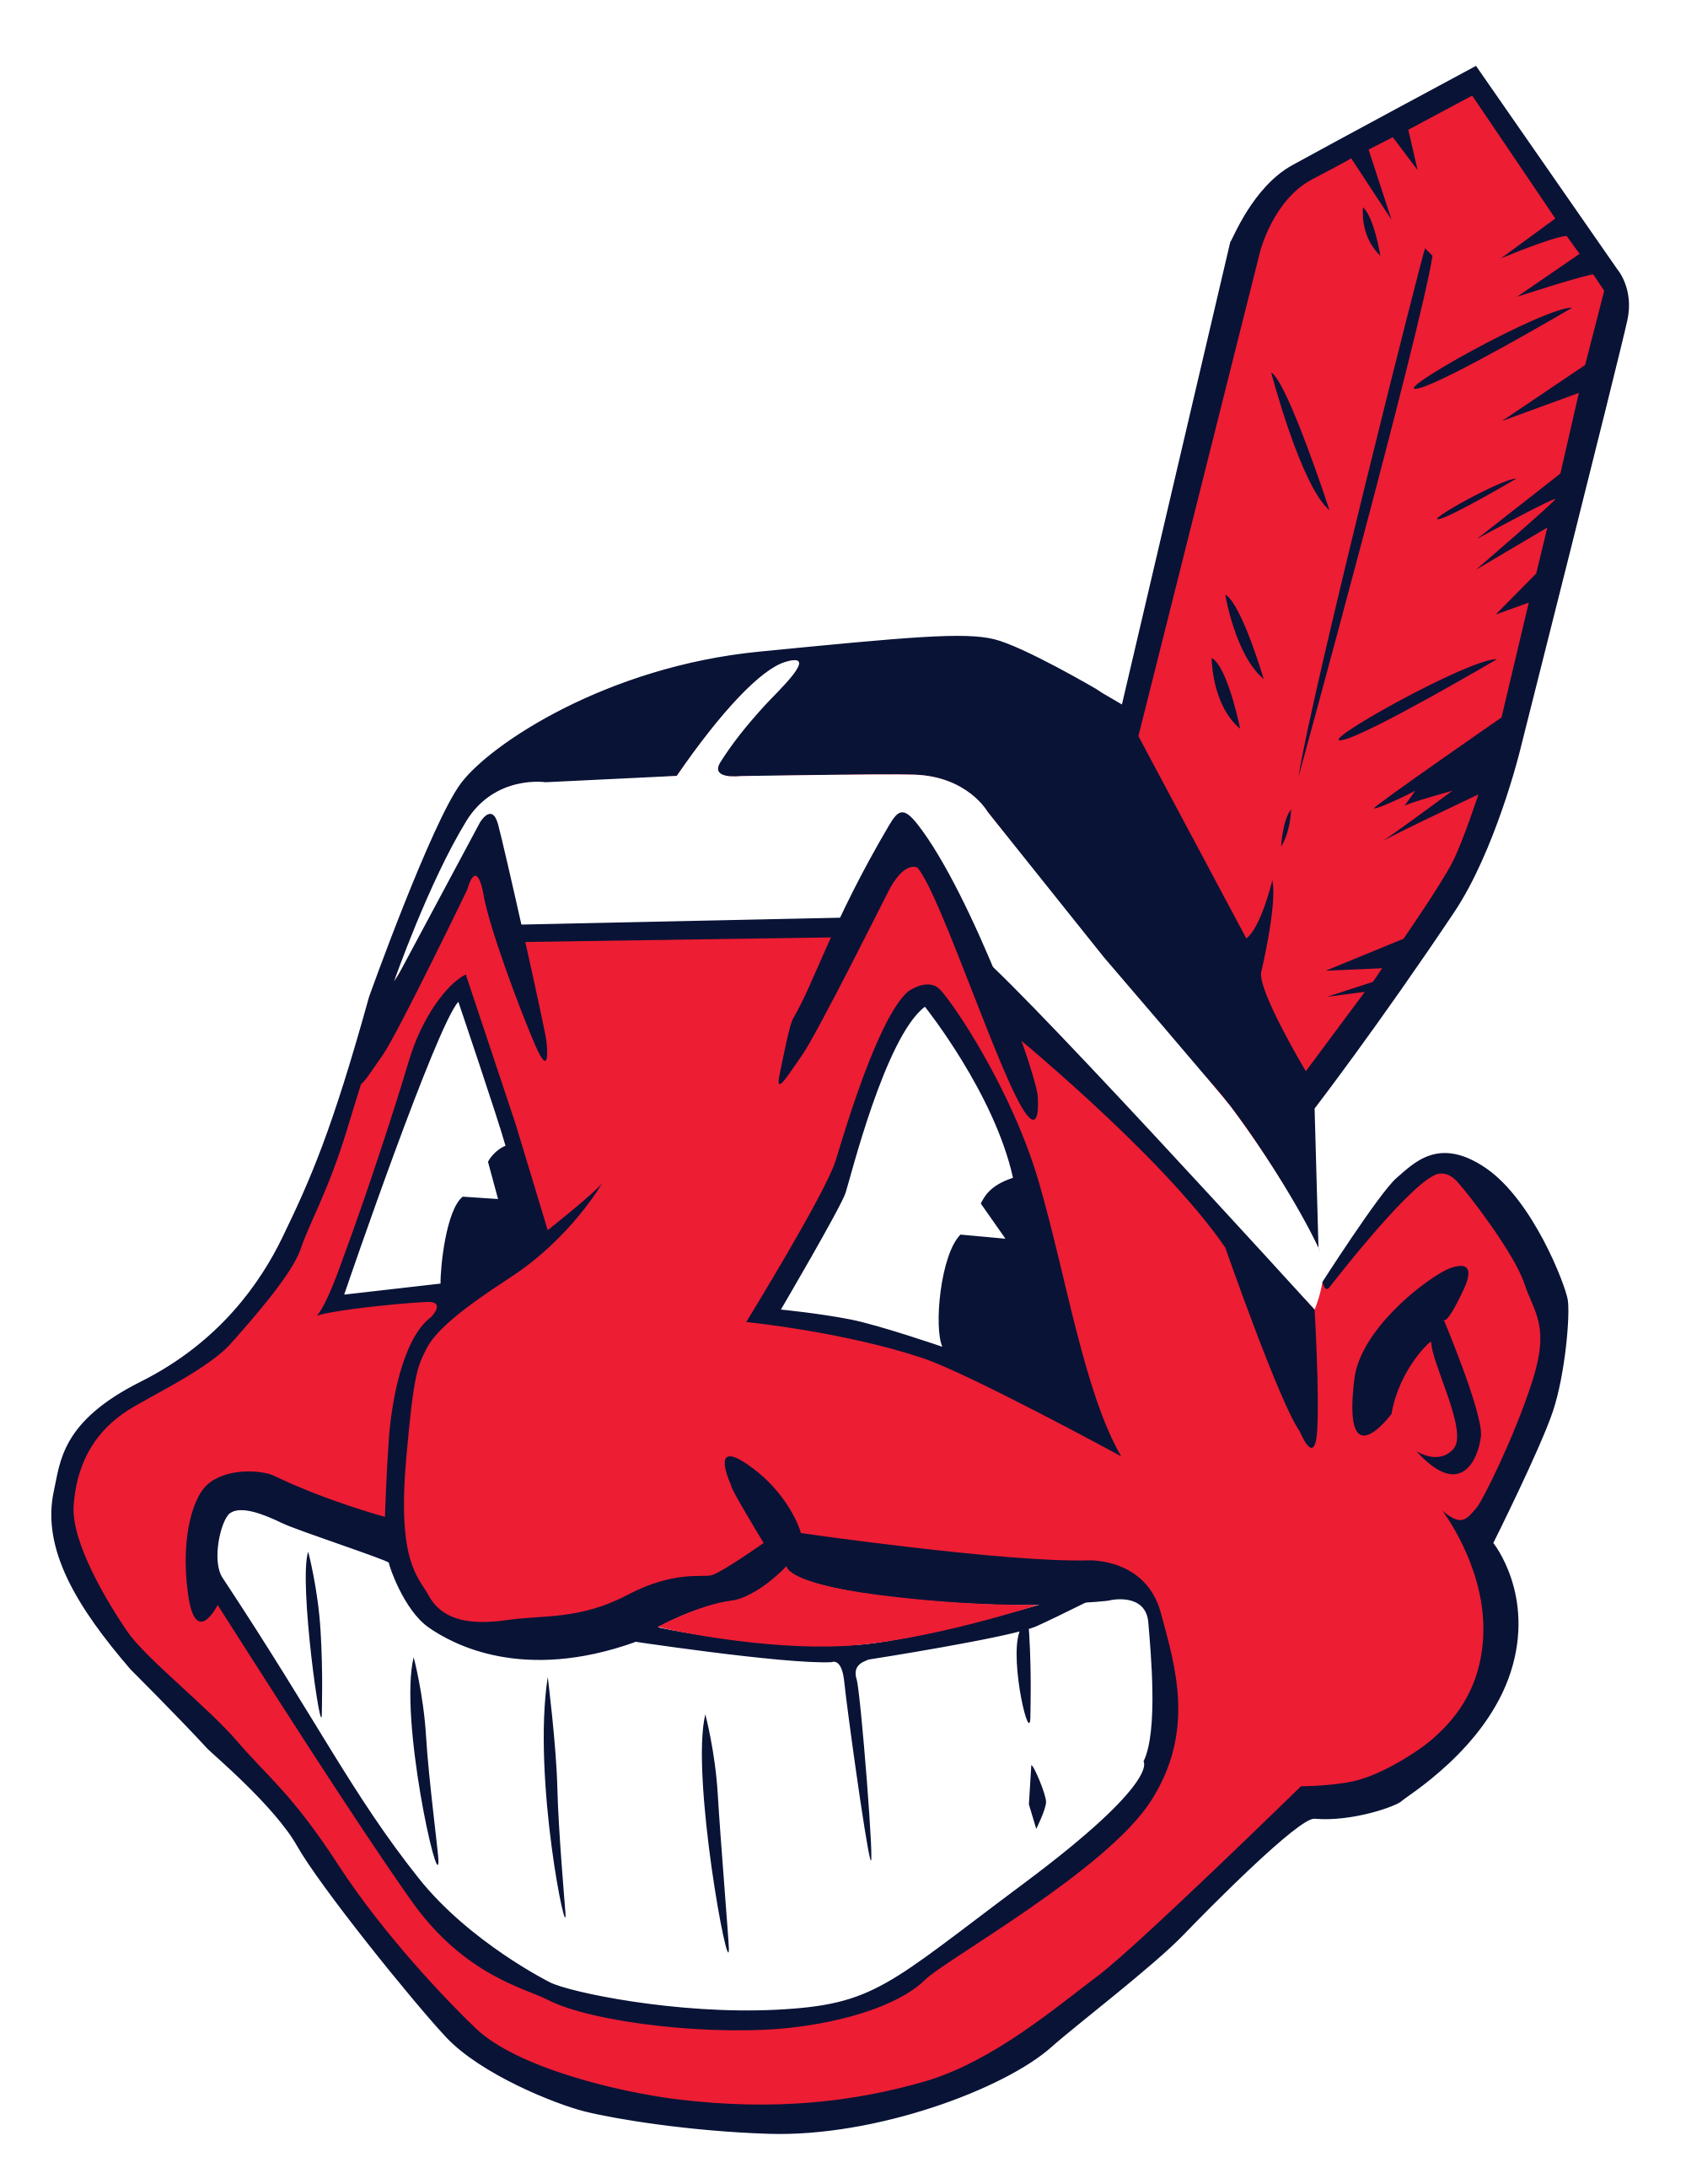 Major League Logos: a Look Into Baseball's Branding | Cleveland indians  logo, Cleveland indians, Indians baseball